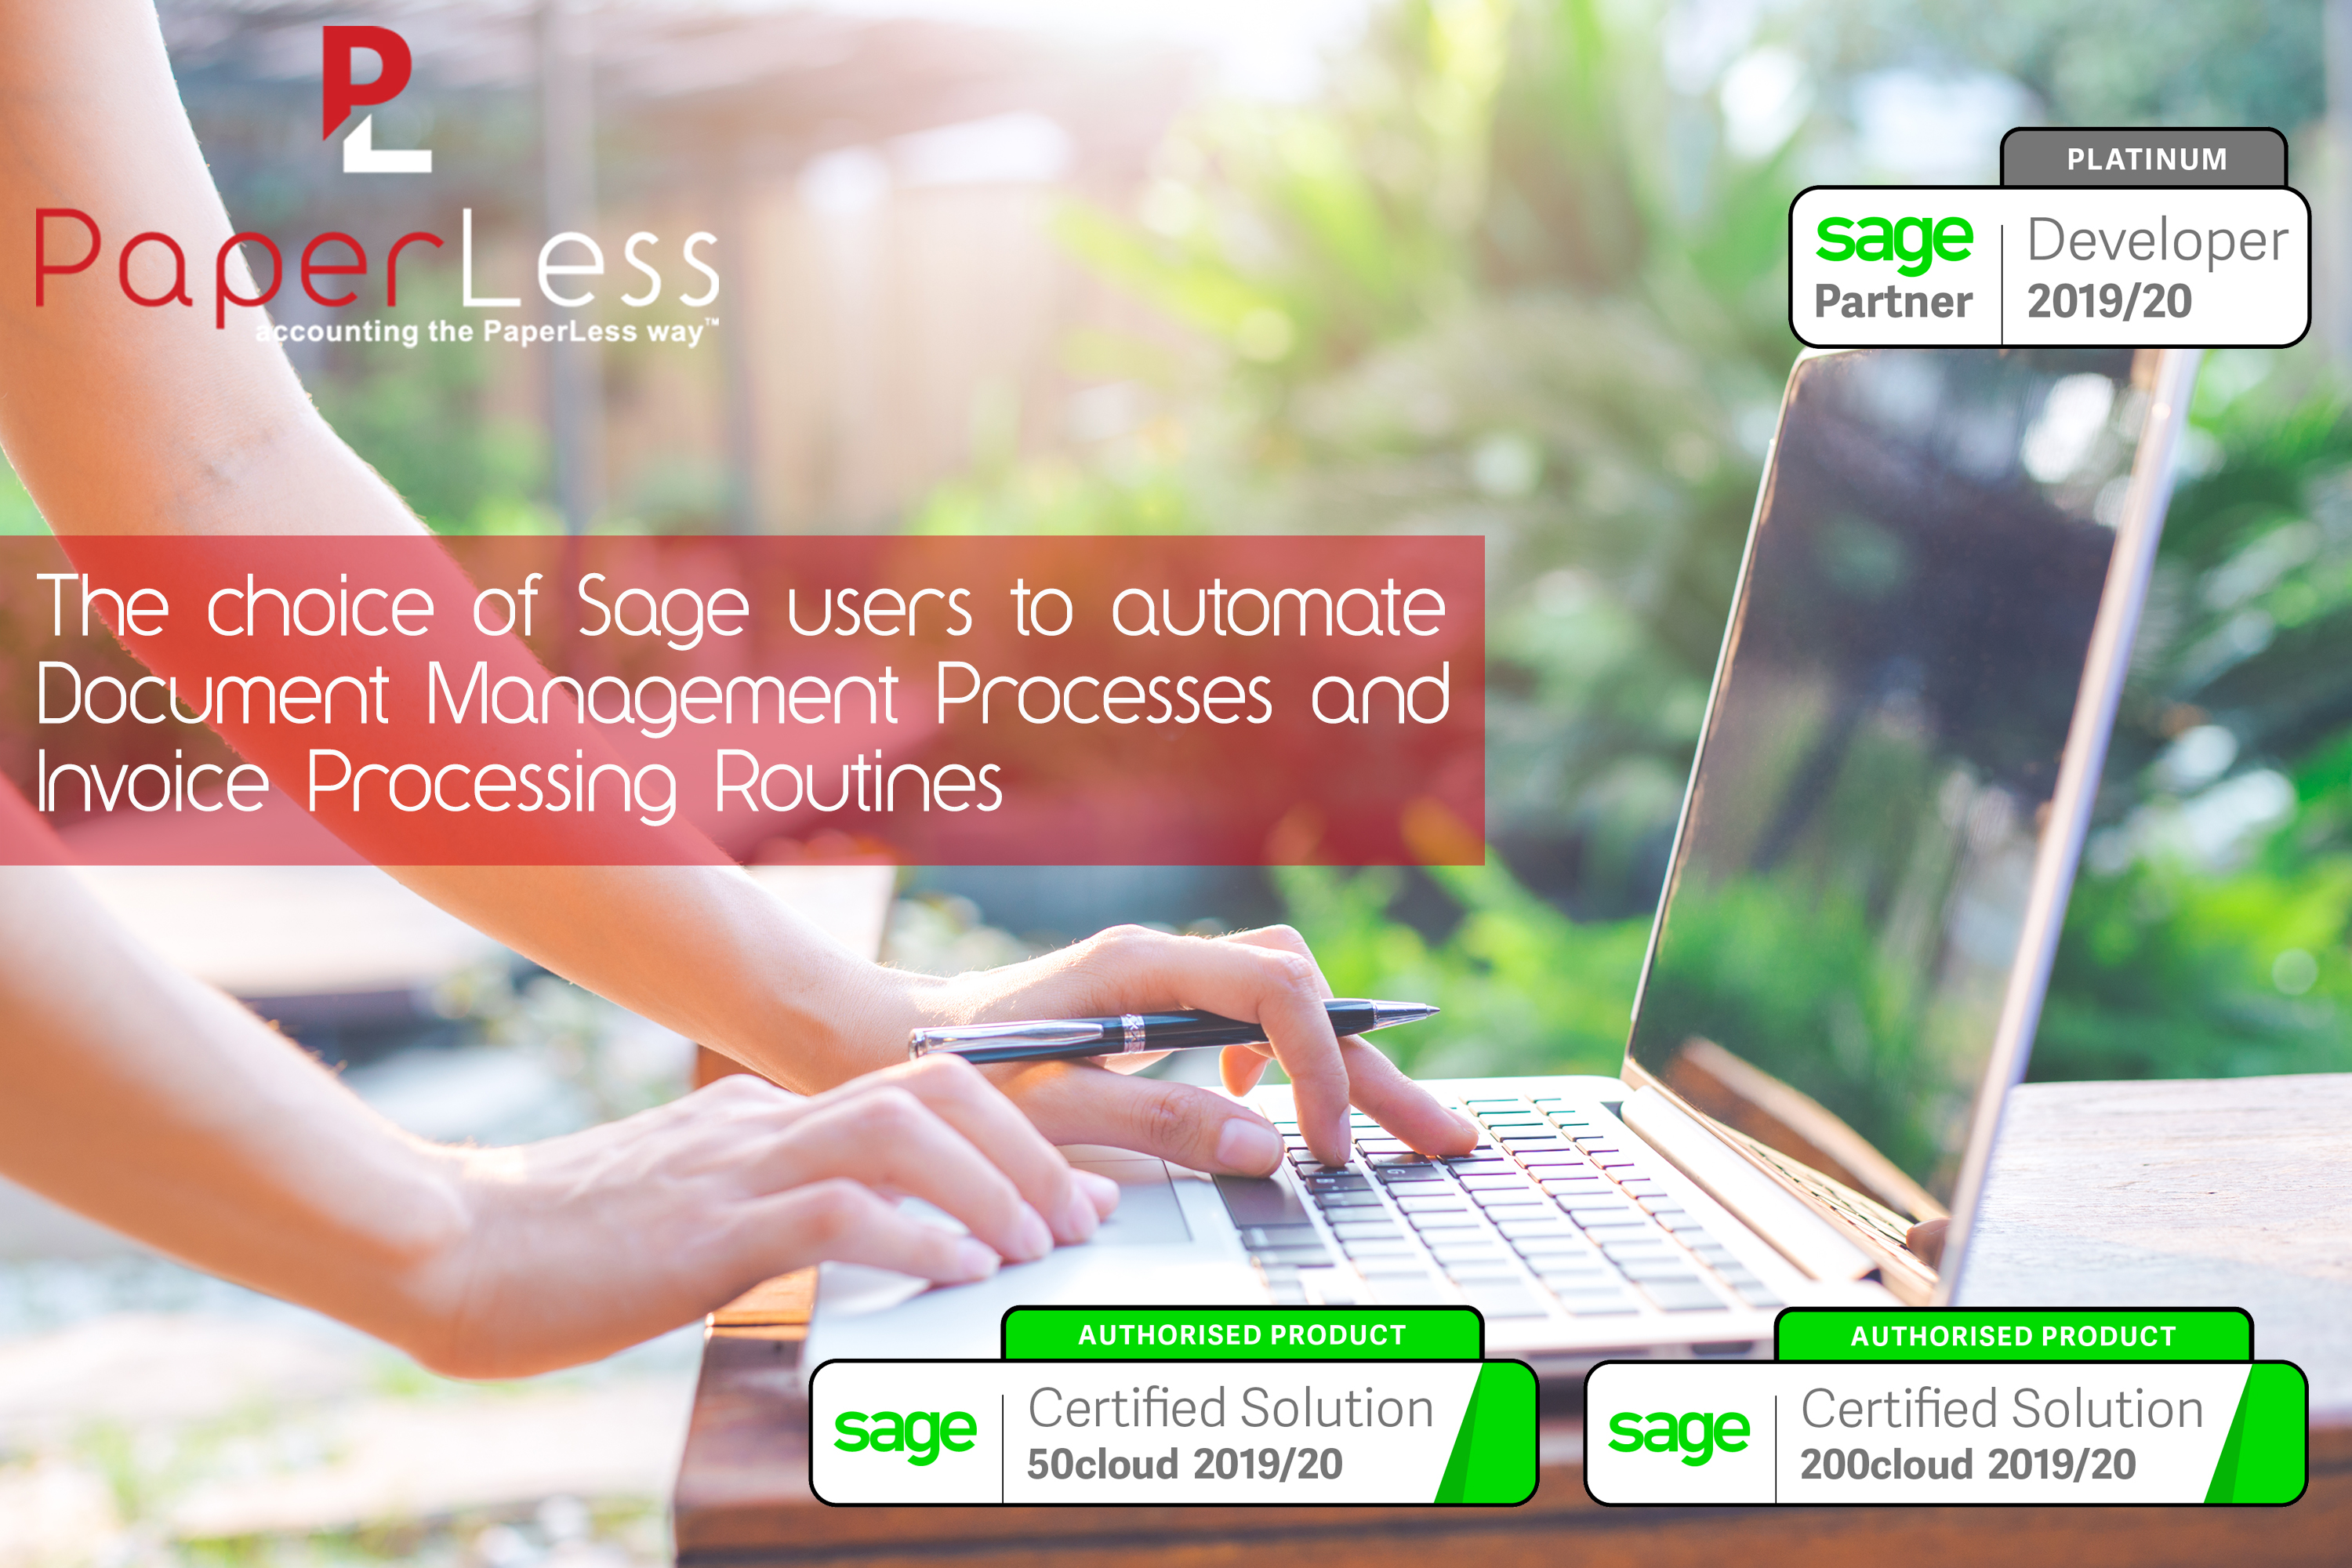 Click here to find out more about PaperLess Automation Software for Sage